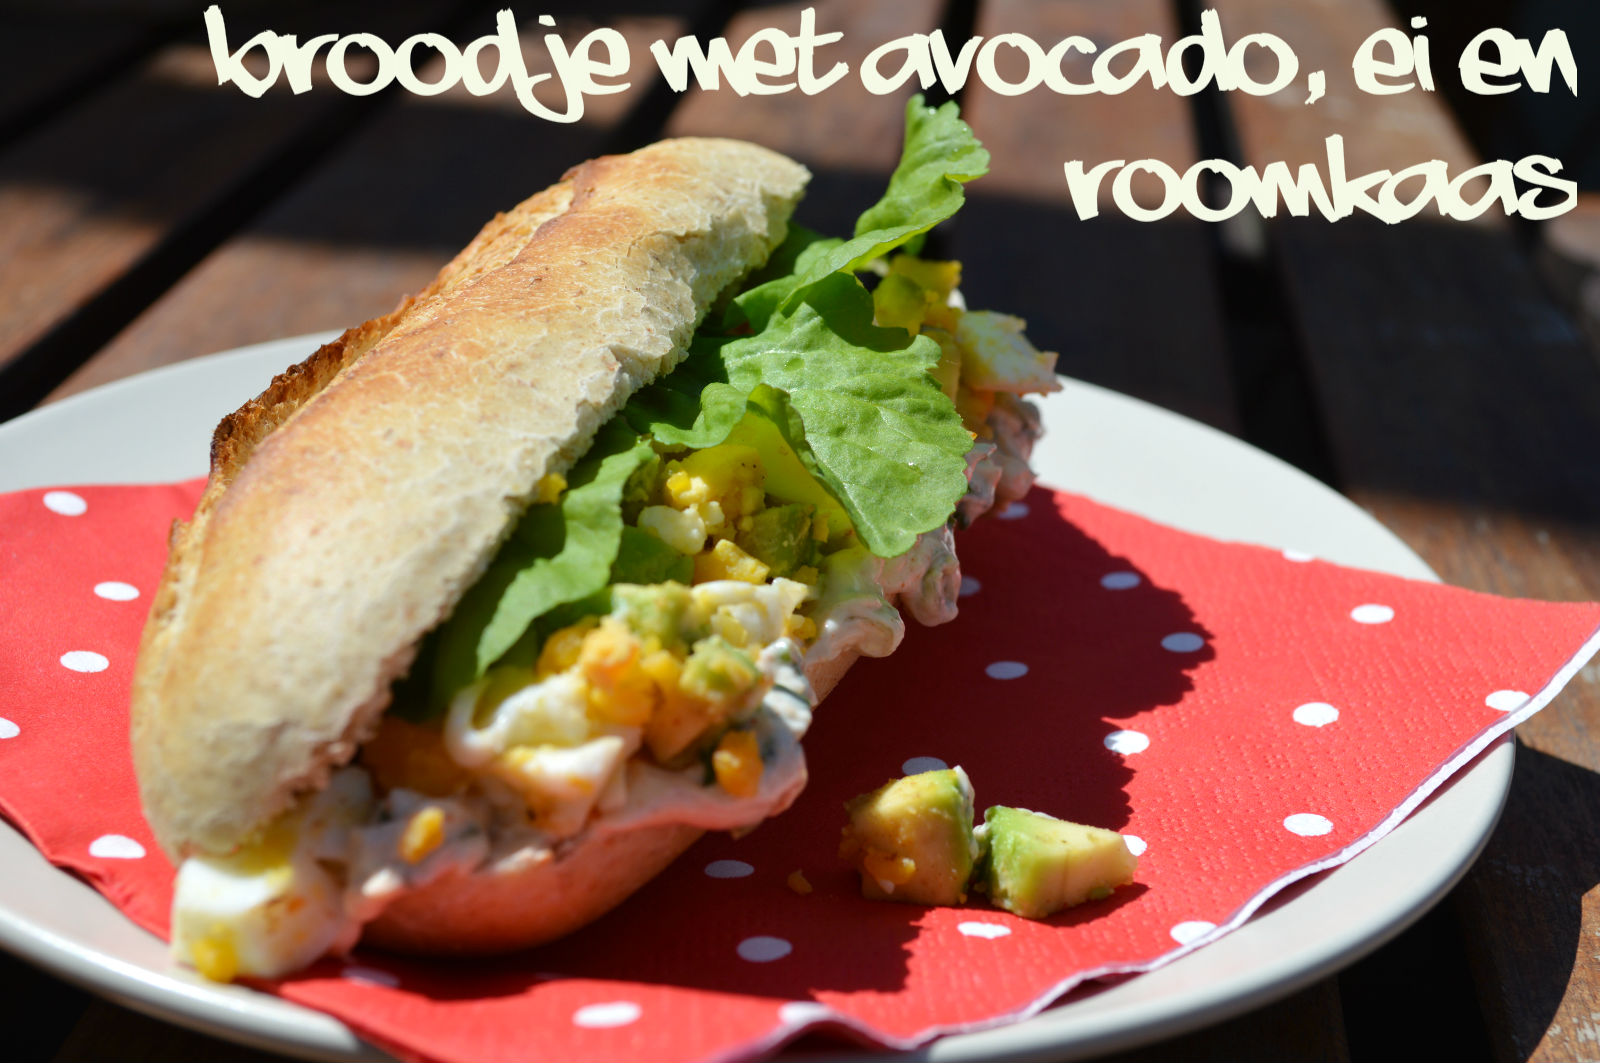 Broodje Avocado Ei Recept Broodje Met Avocado Ei En Roomkaas Ik Ben Nu